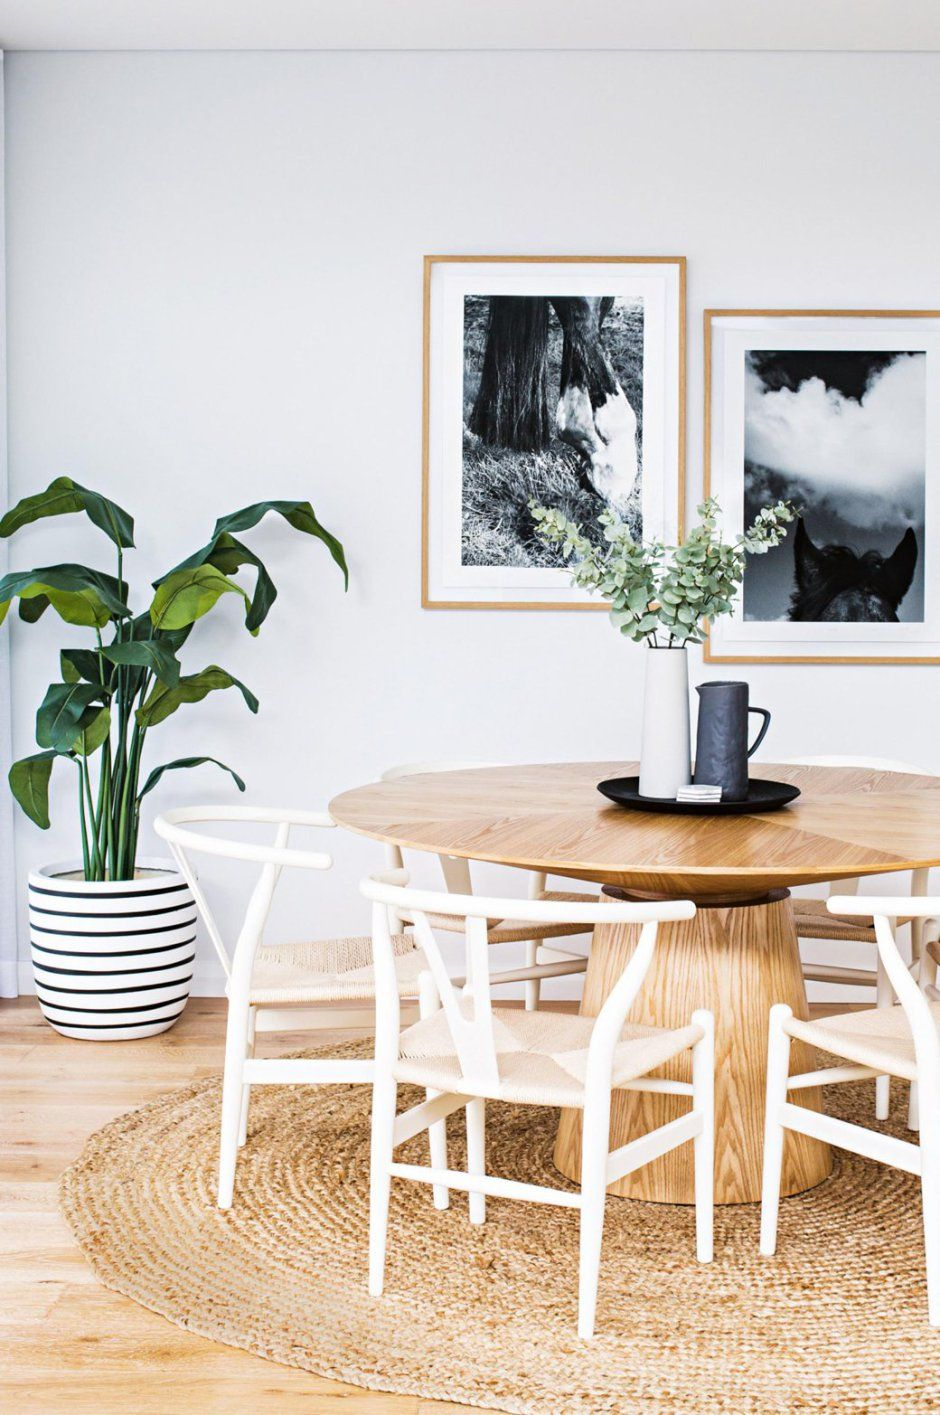 10 Rooms With Plants For Minimalists Decor8 Scandinavian